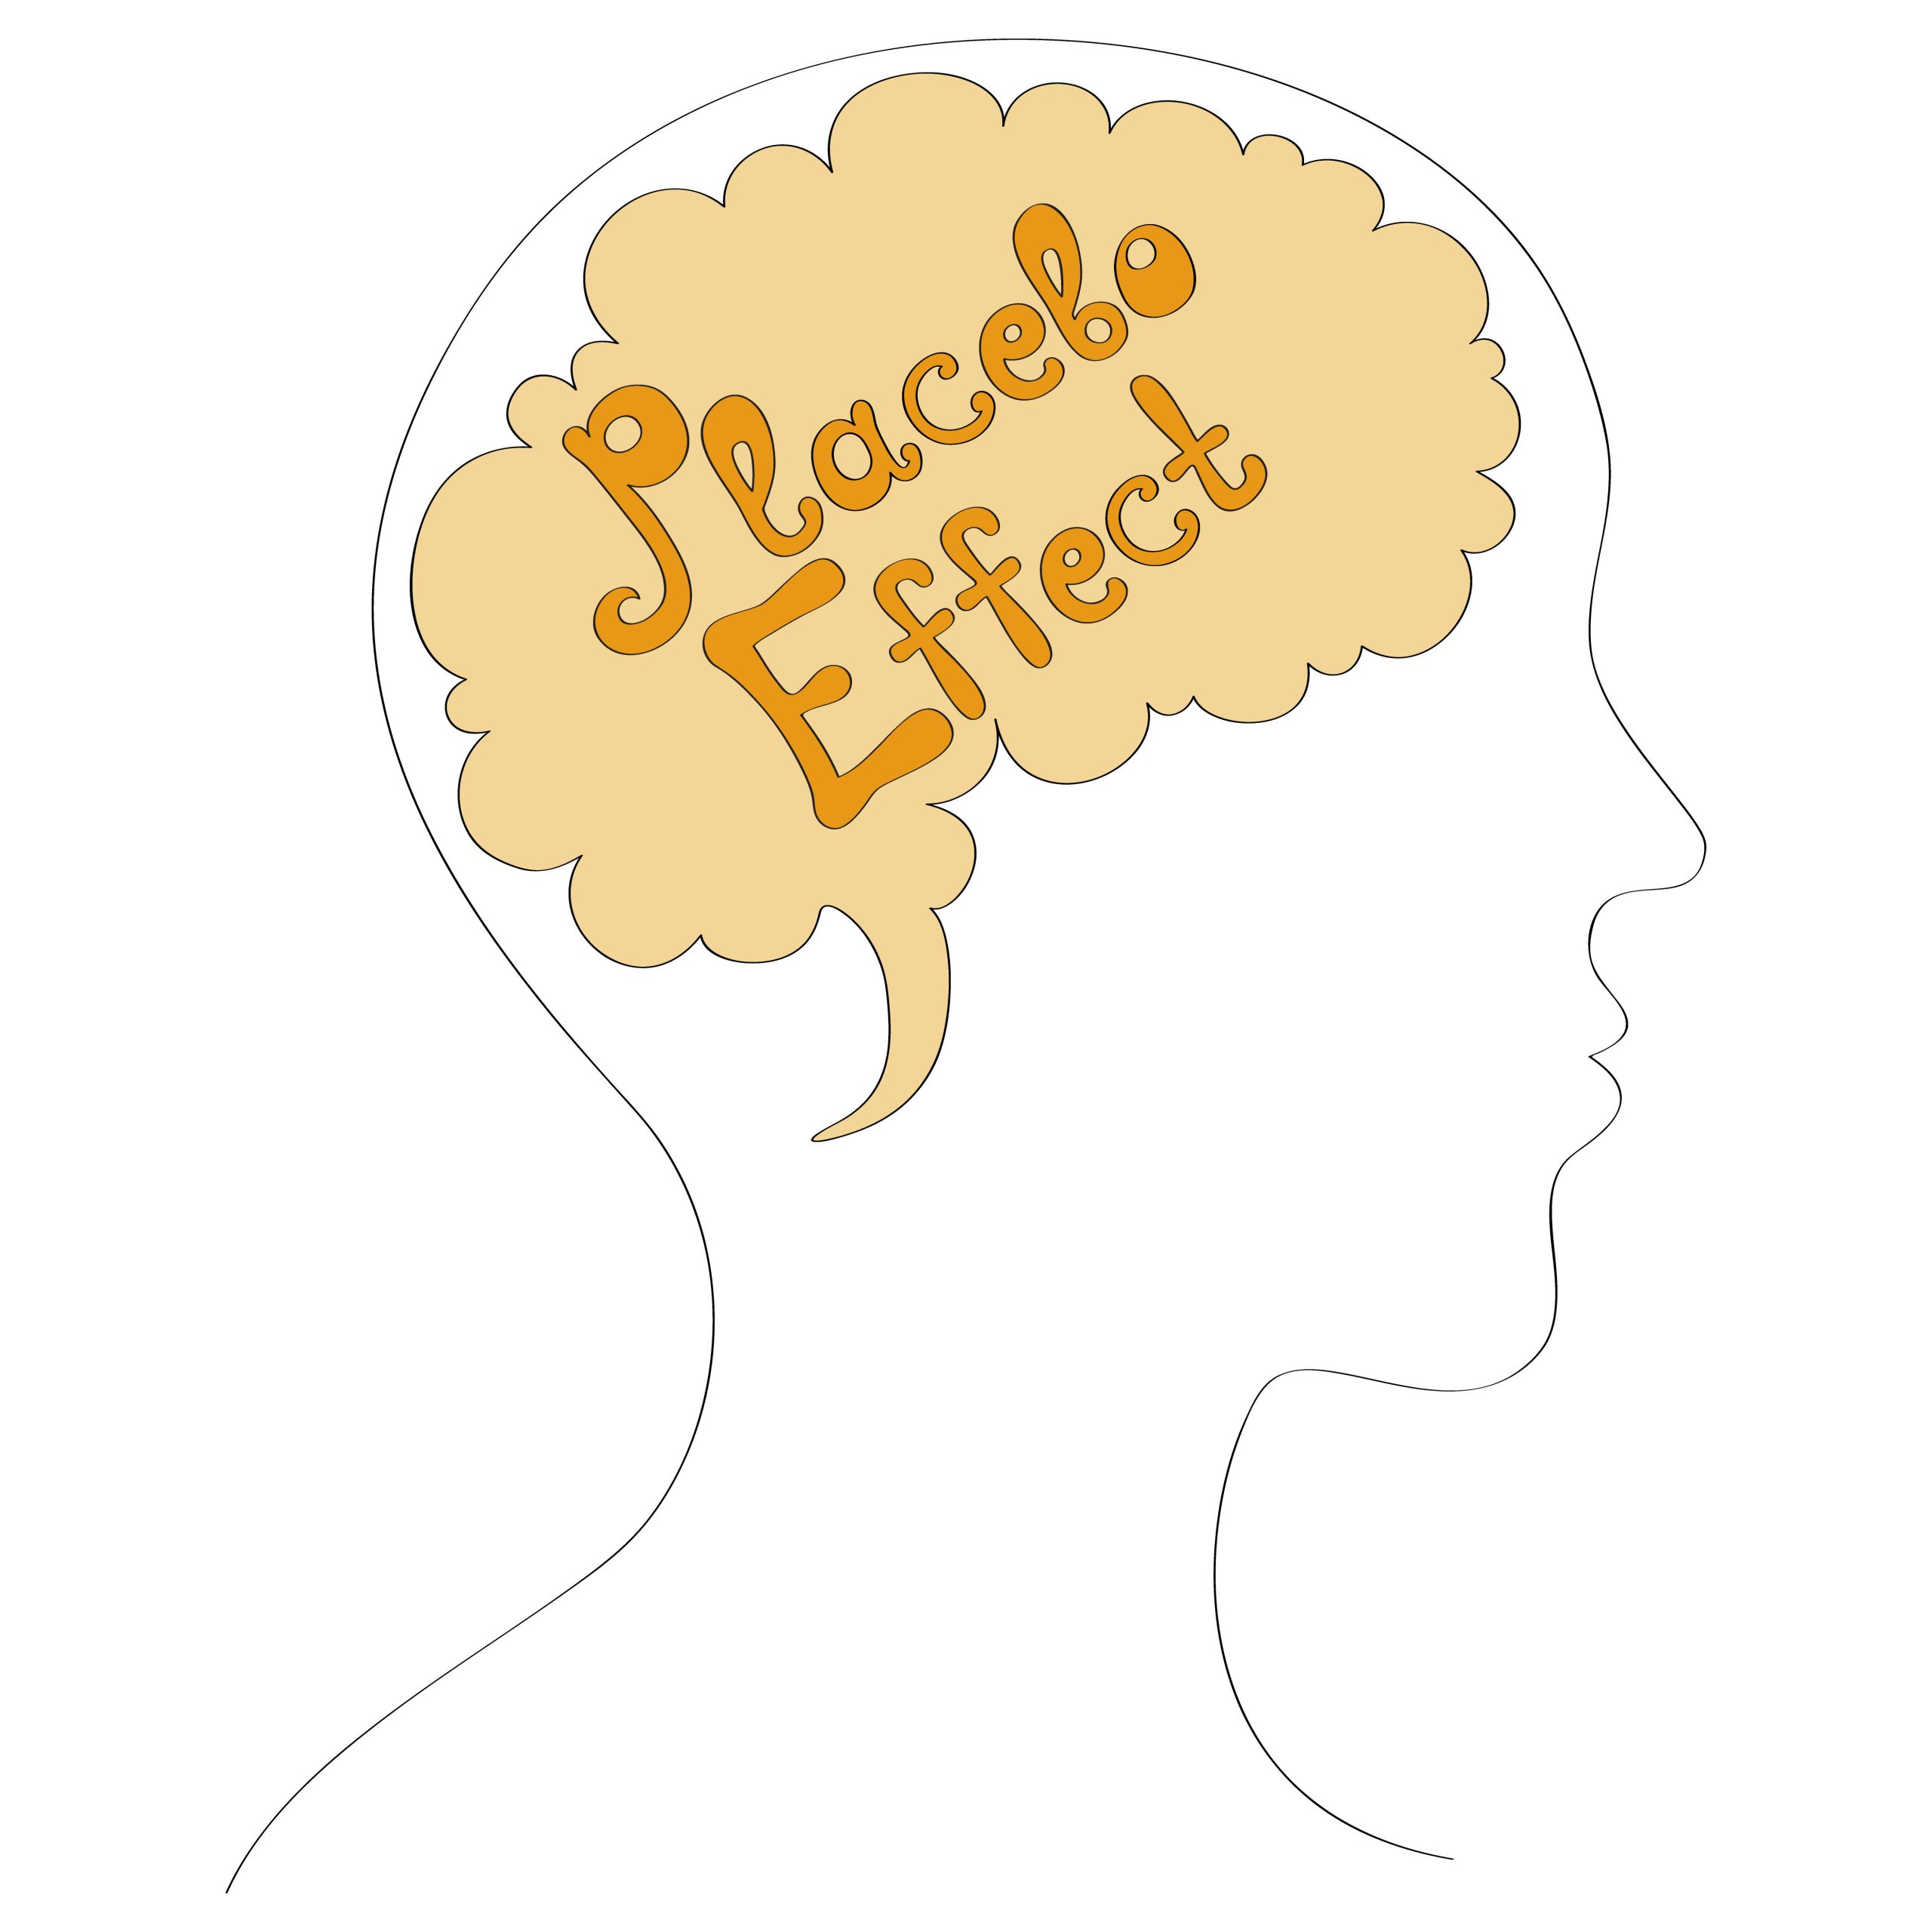 Placebo Effect written over a brain